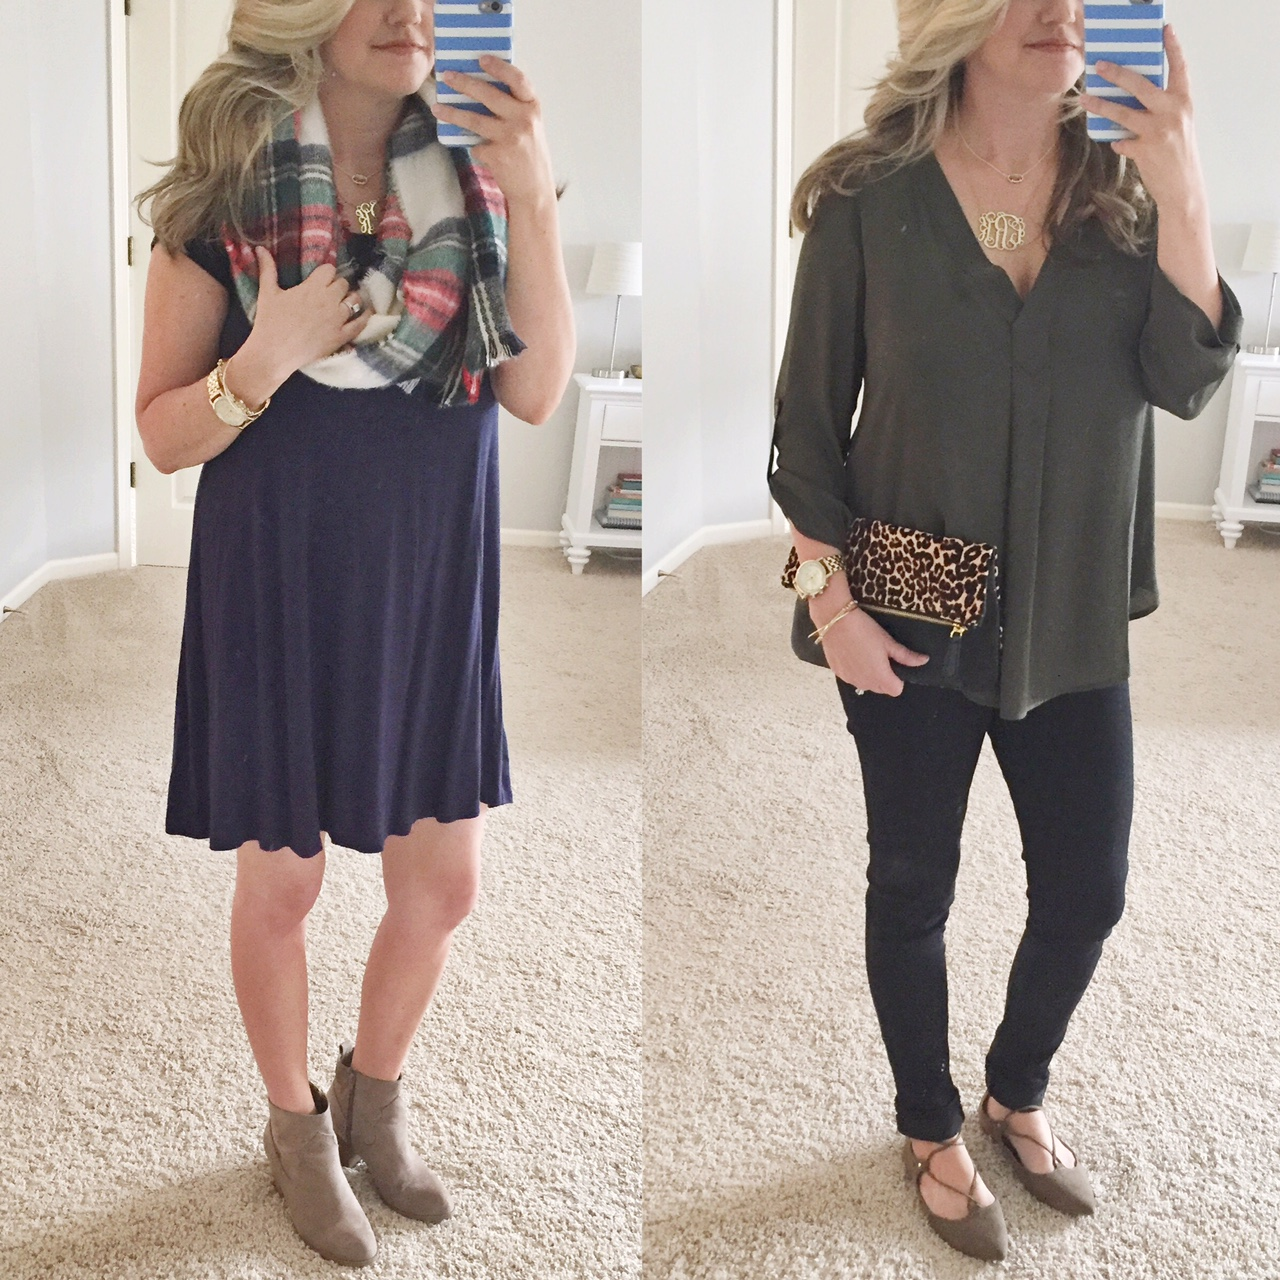 #WIW Wednesday